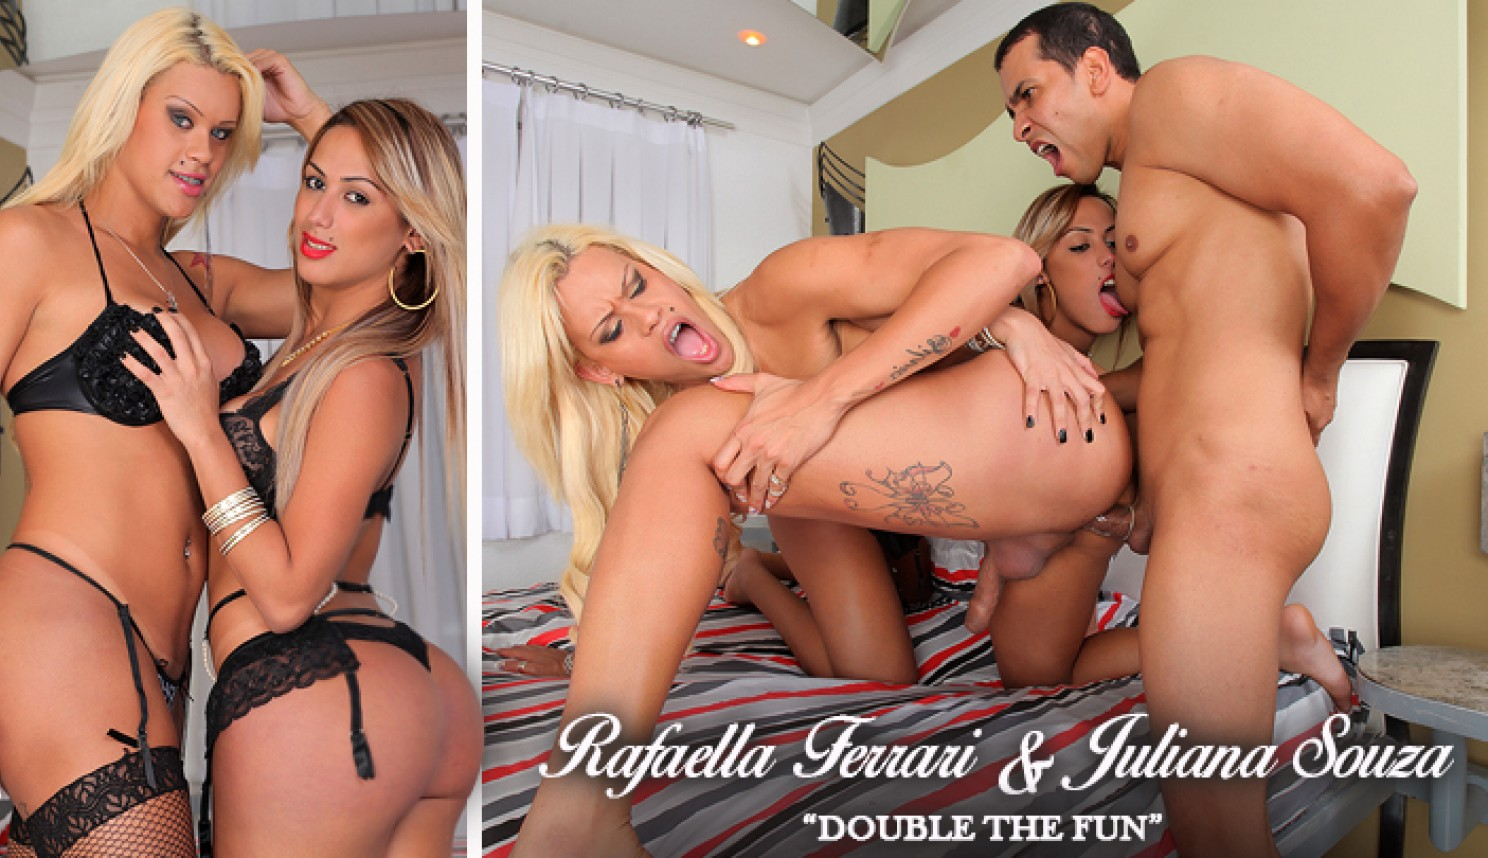 Juliana Souza & Rafaella Ferrari in Double the Fun - Trans500 Dating quest usa dig wikipedia